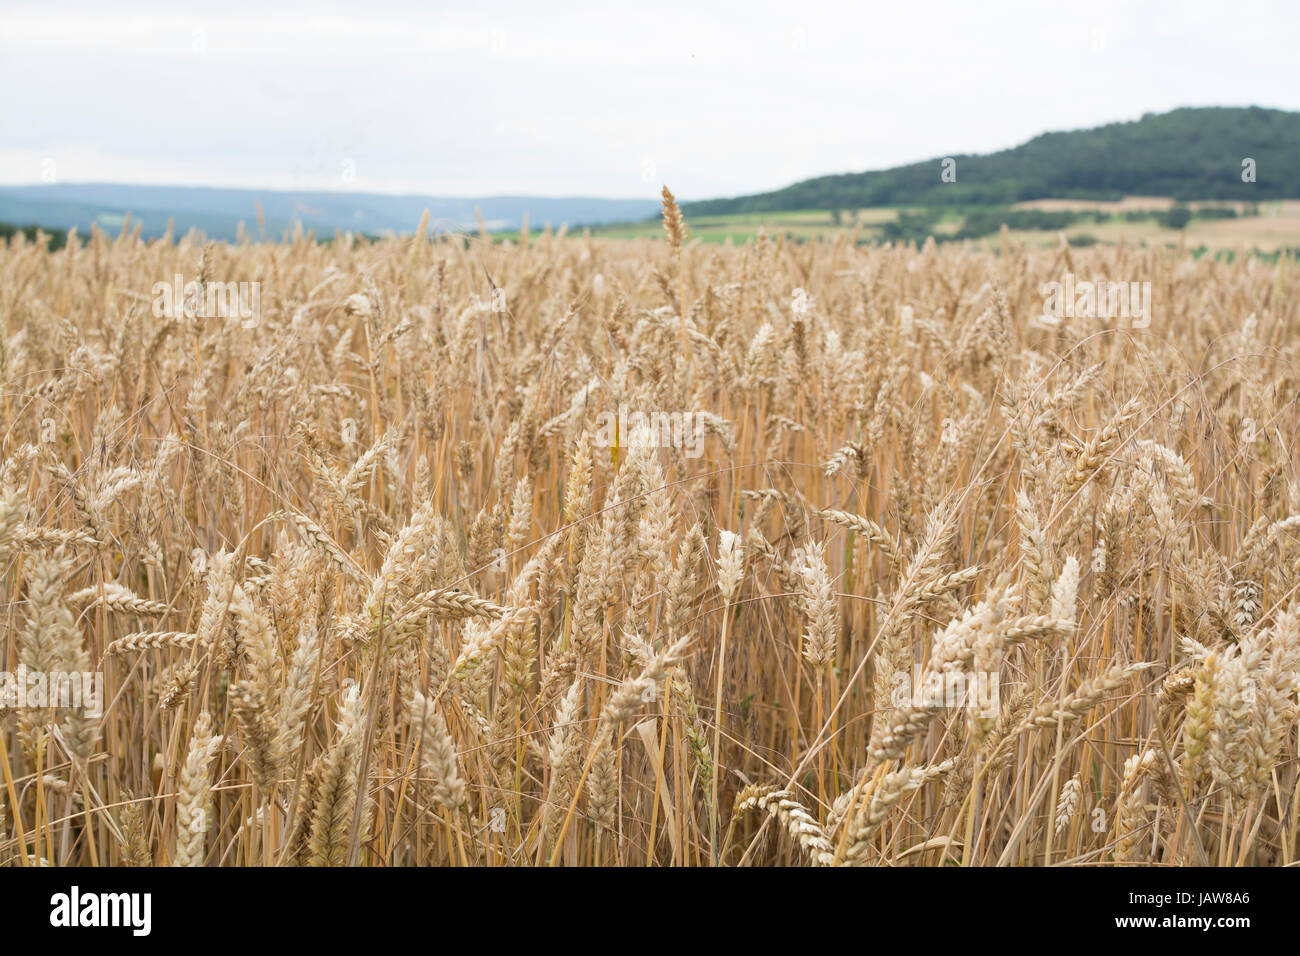 Wheat field in Bavaria, Germany - golden time approaches - Stock Image